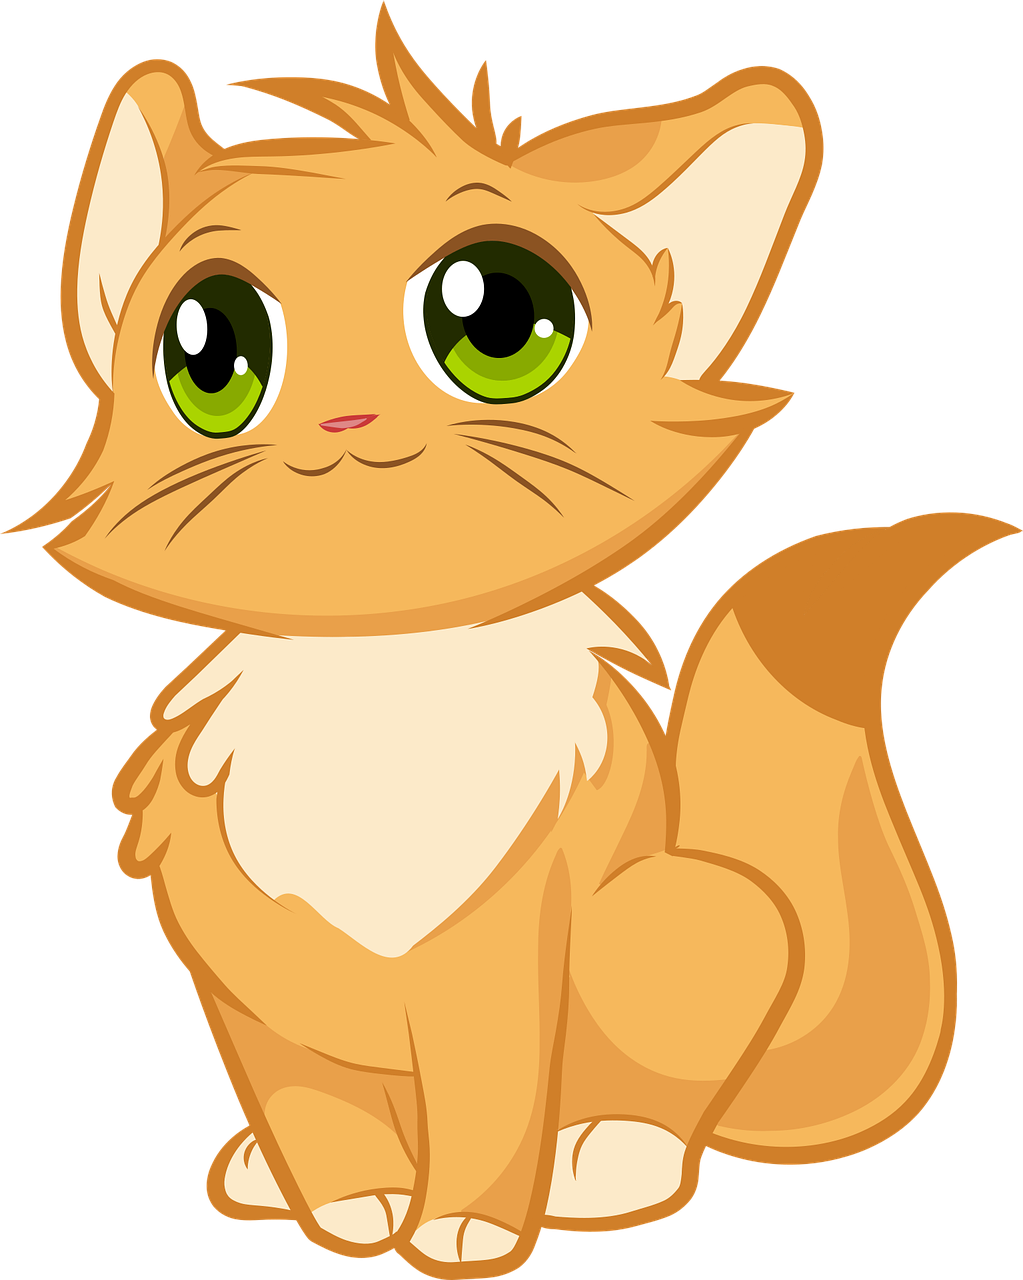 Kitten Cute Cat Free Vector Graphic On Pixabay